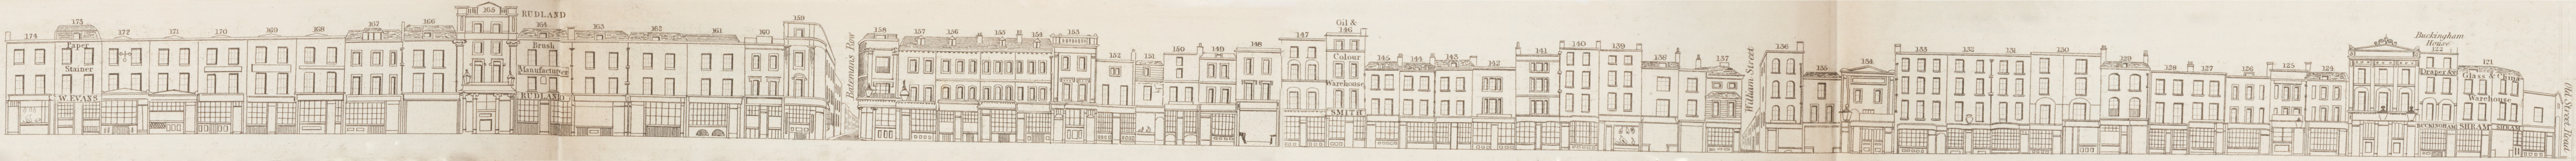 map - Tallis's London street views : No. 61. Shoreditch, division 3 (west)